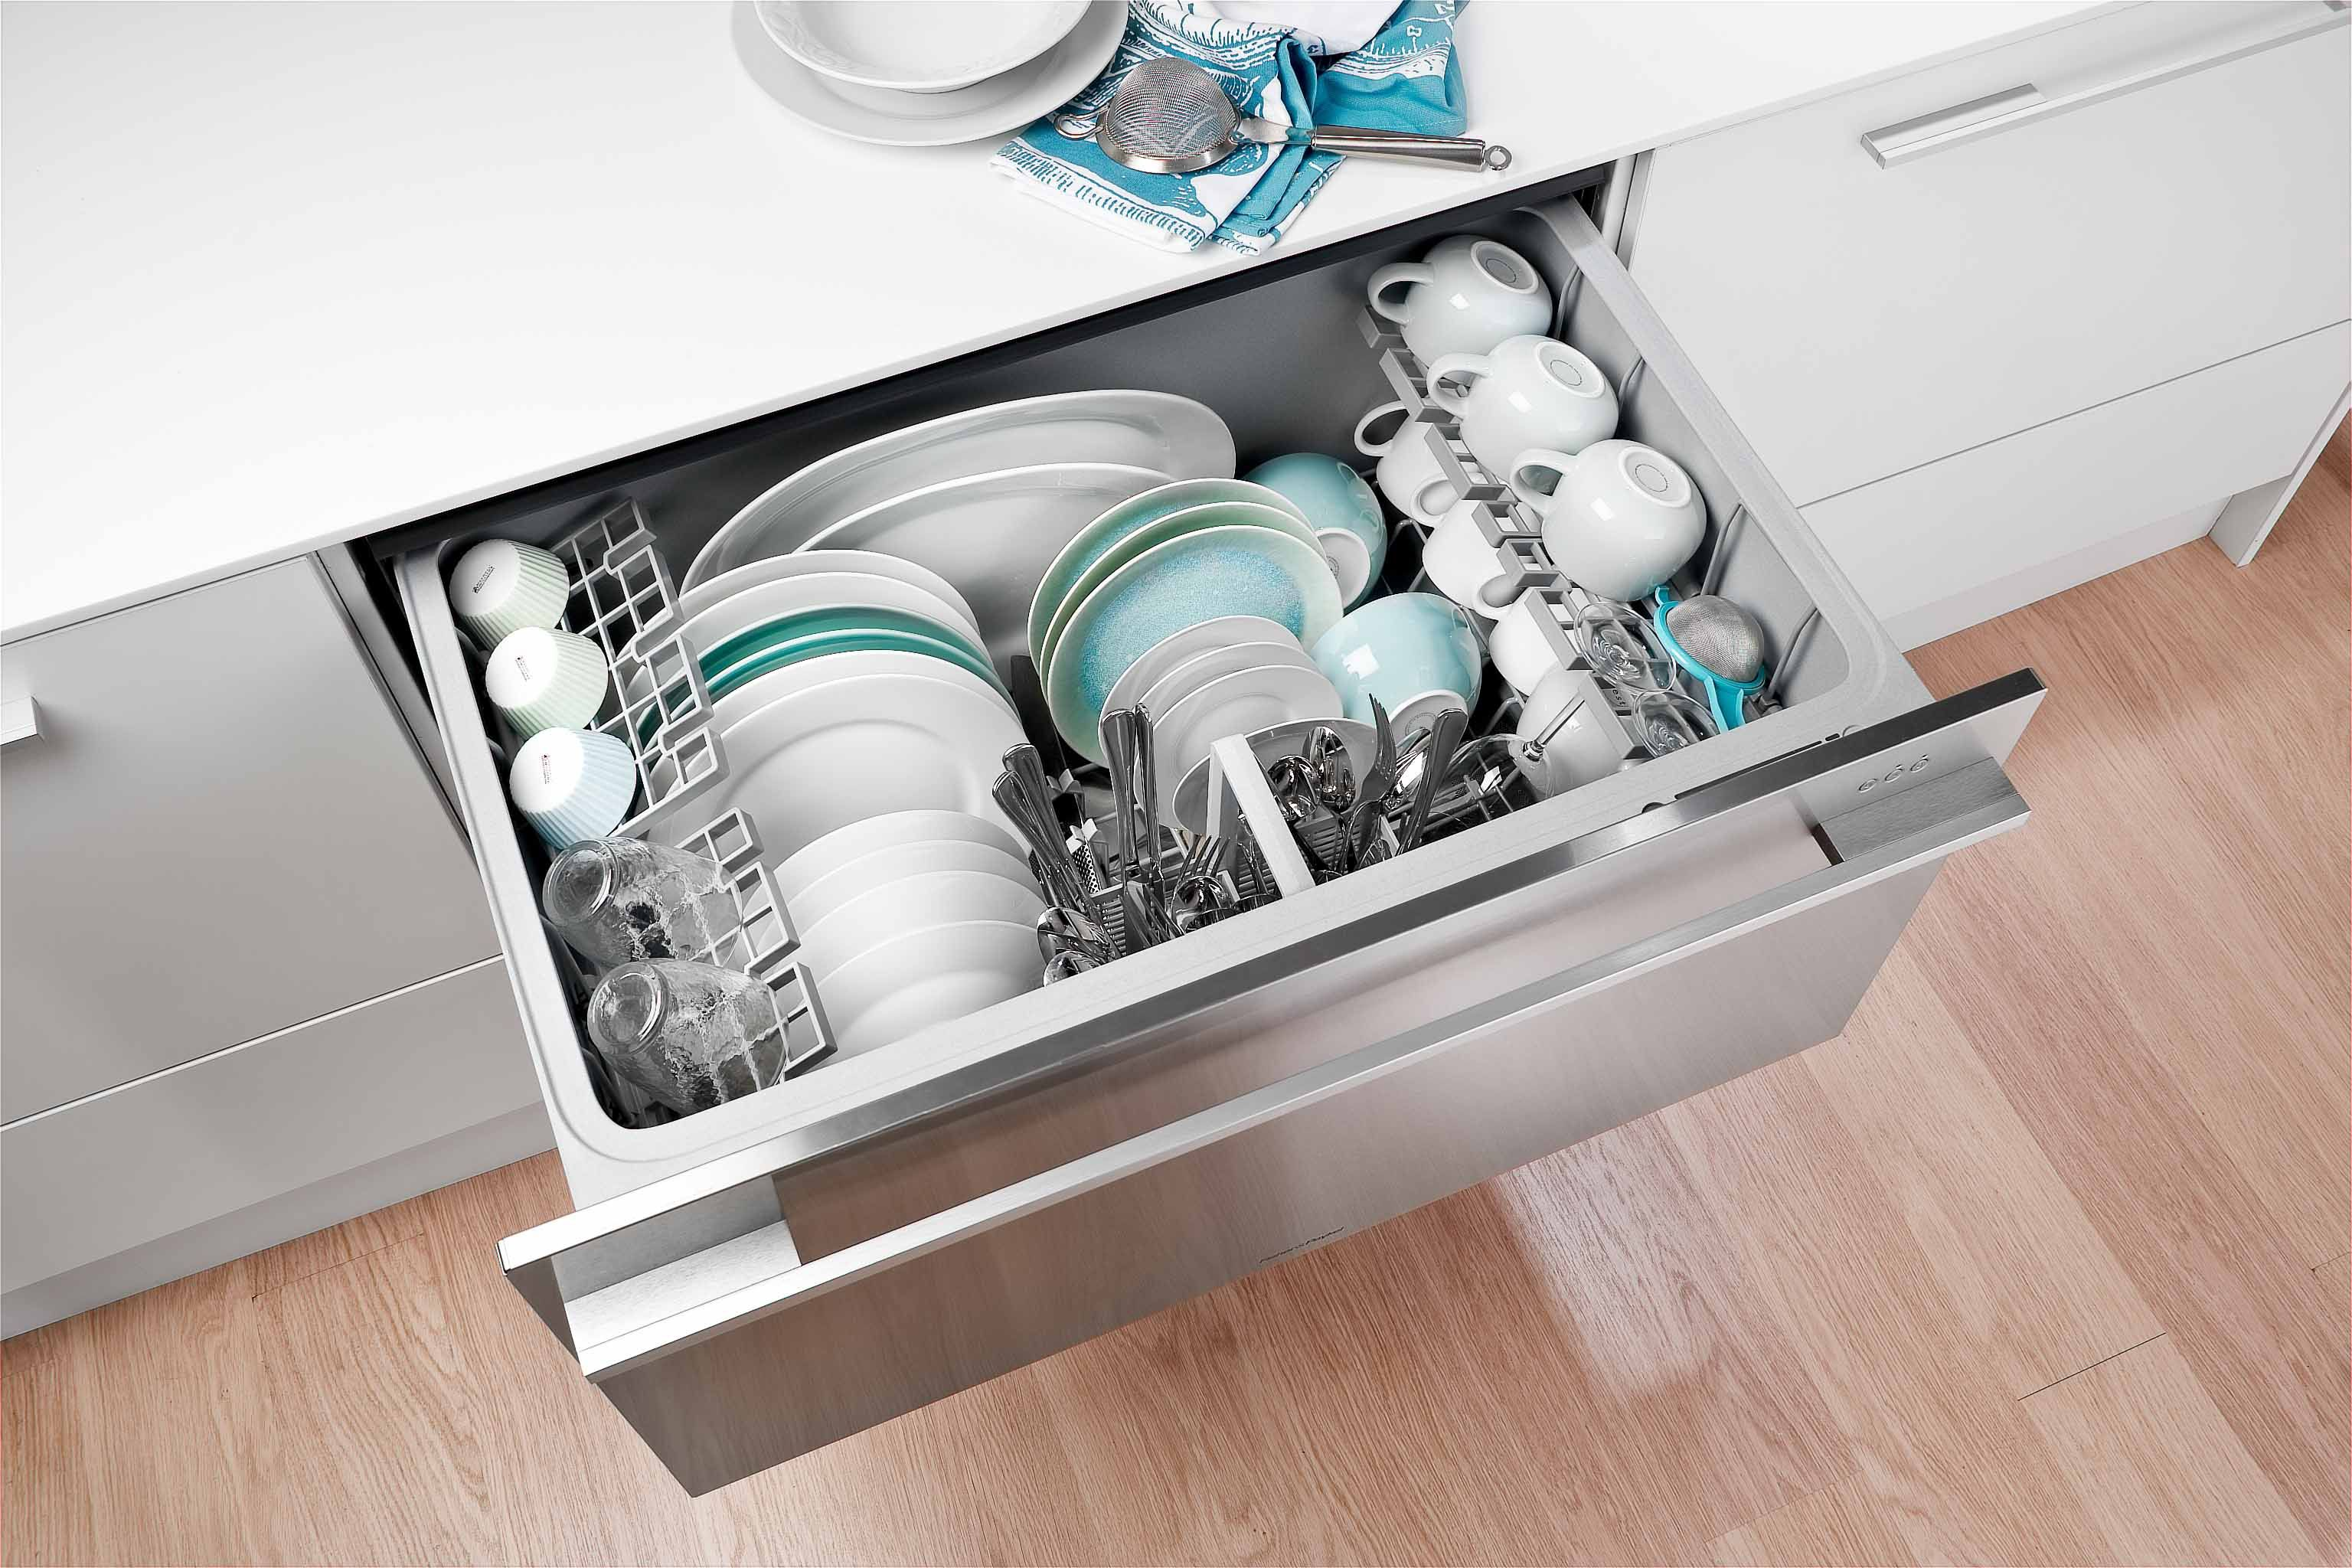 dishwasher appliances drawer paykel single dishdrawer front fisher high angle online